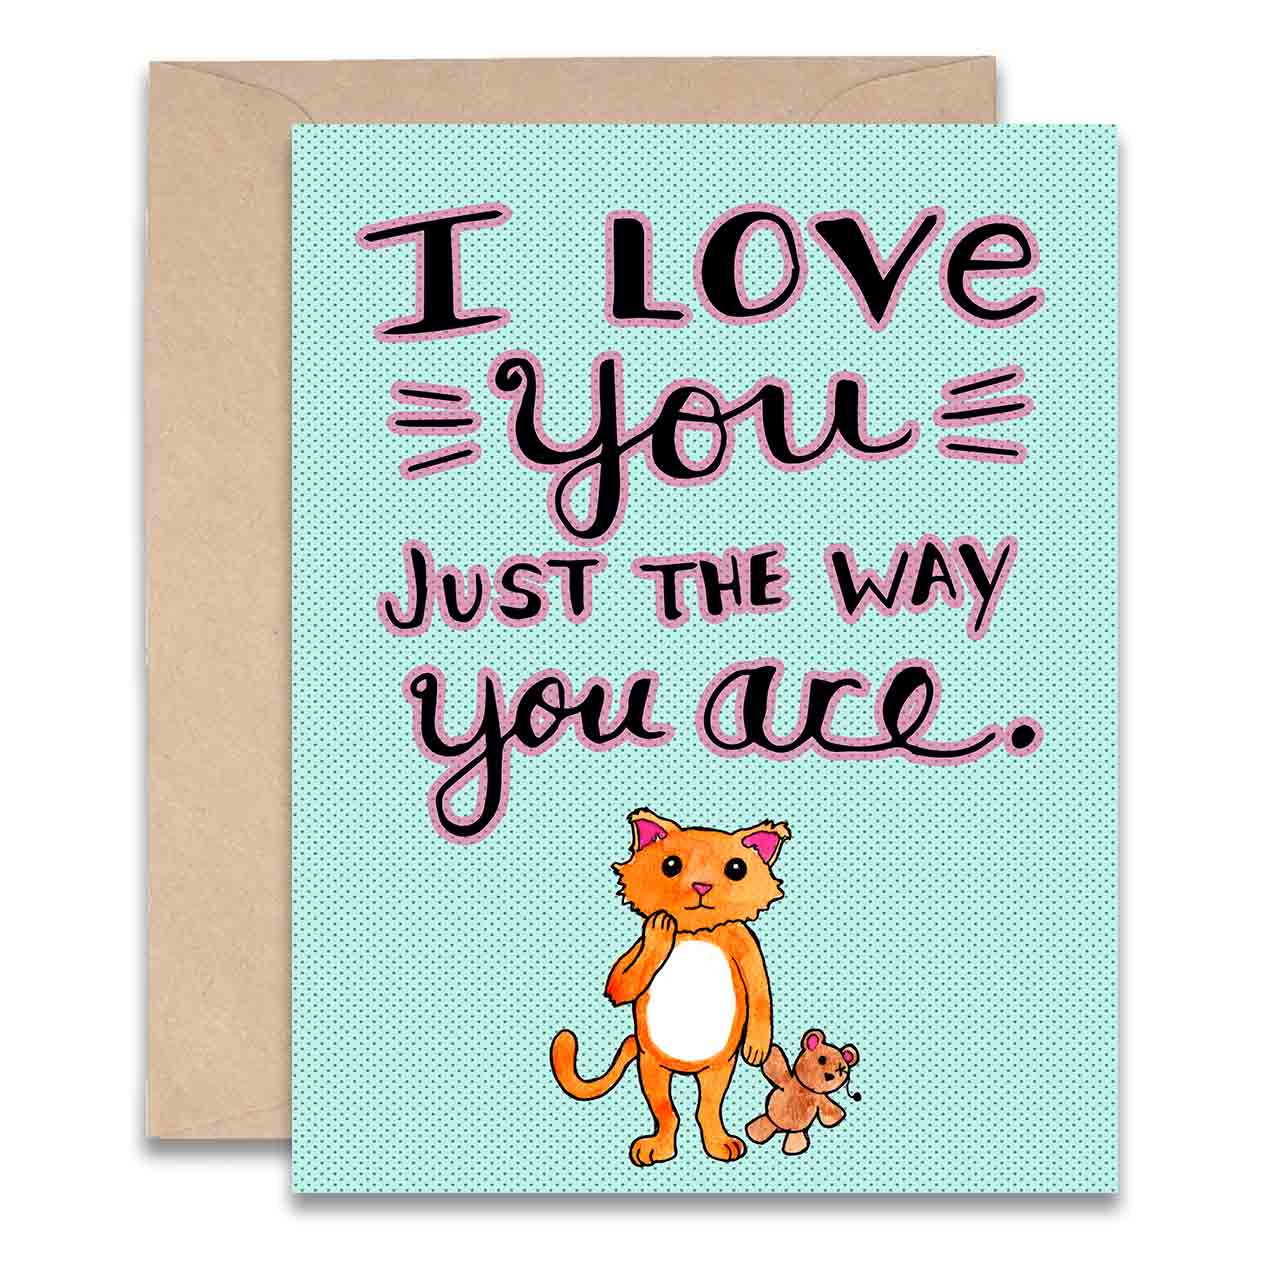 Love Card - Just The Way You Are, Jodi Lynn Burton, Handcrafted Home Goods and Gifts